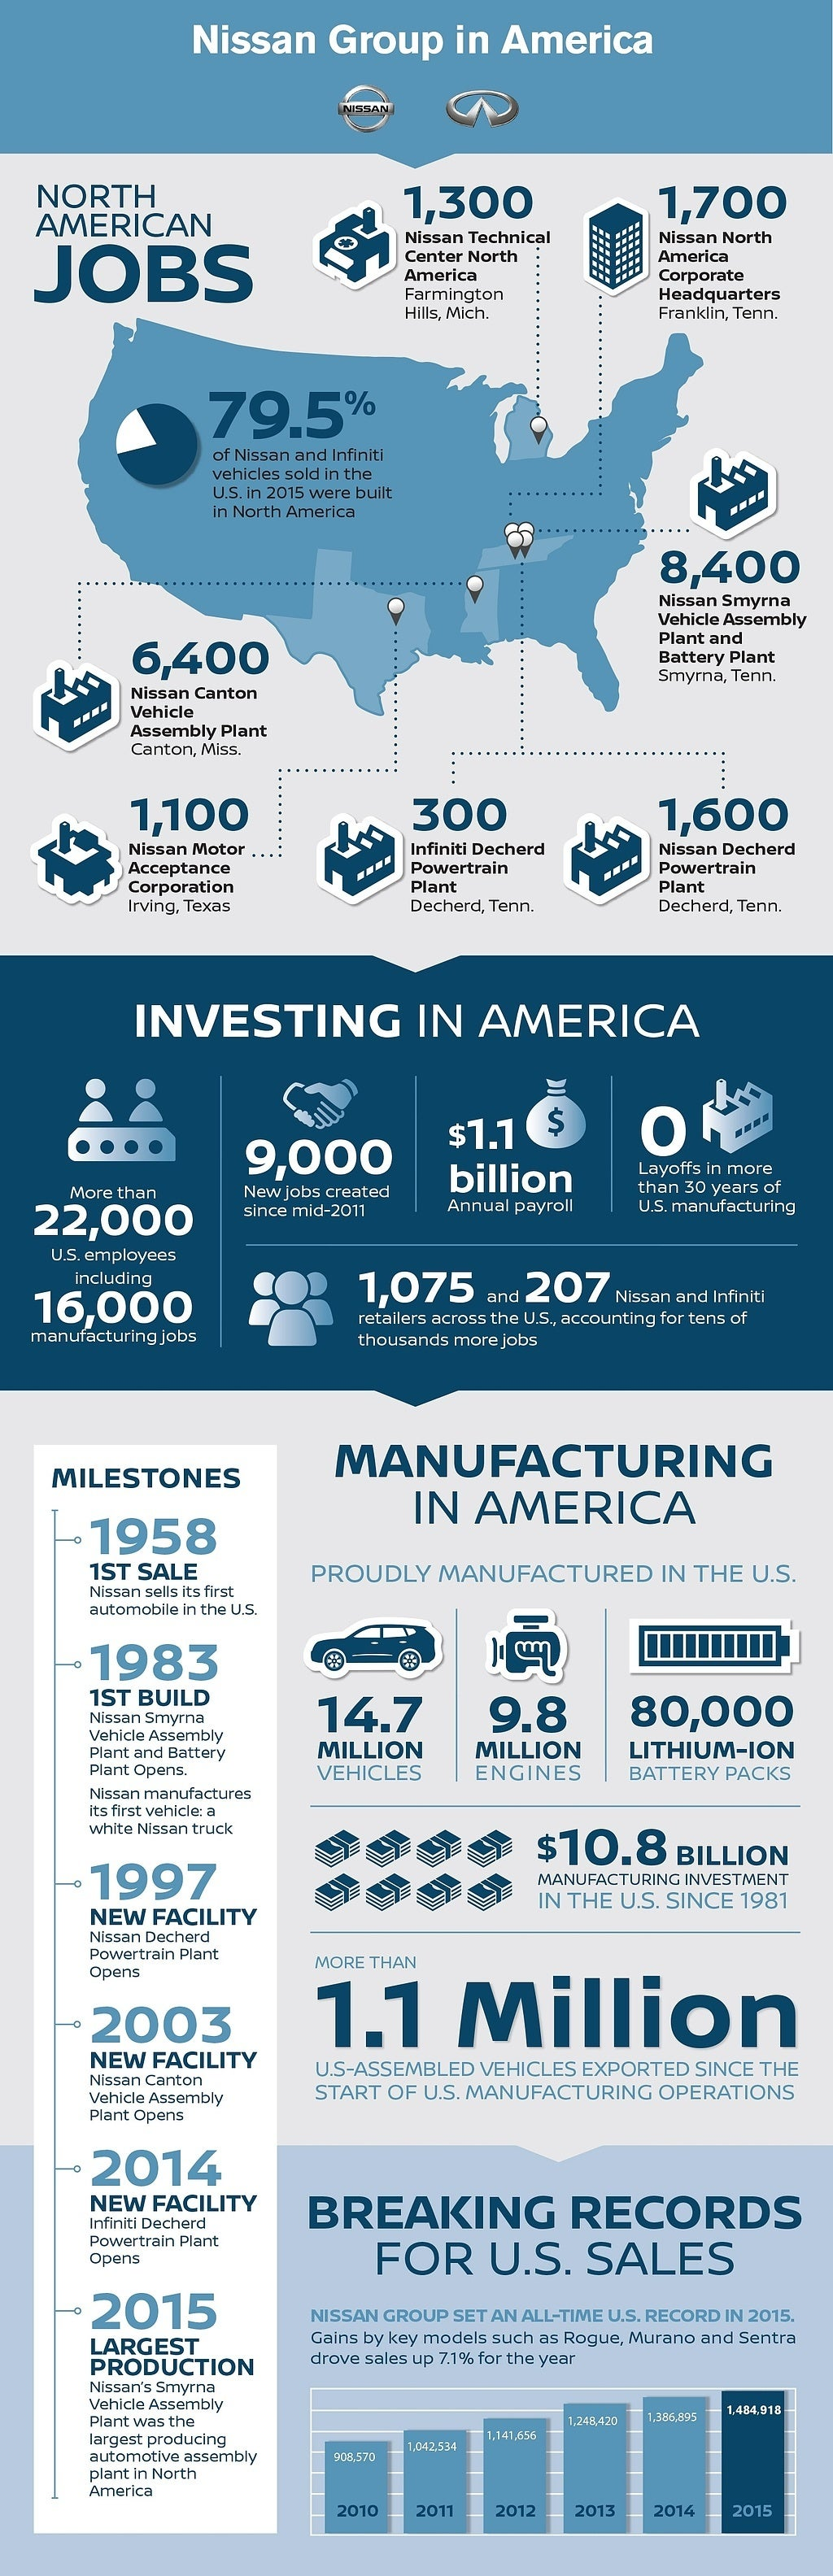 In recent years, Nissan has made strategic investments in its U.S. operations to ensure the company is able to continue to build quality vehicles that meet the growing needs of U.S. consumers. In 2015, Nissan marked a number of key U.S. milestones, including all-time records for total sales (1,484,918) and production (962,373). Localization remains an important part of Nissan's strategy in North America, and the company has increased production of its core models in North America: Altima, Pathfinder, Sentra, Rogue, Versa, LEAF, Murano, Maxima and the next-generation TITAN.